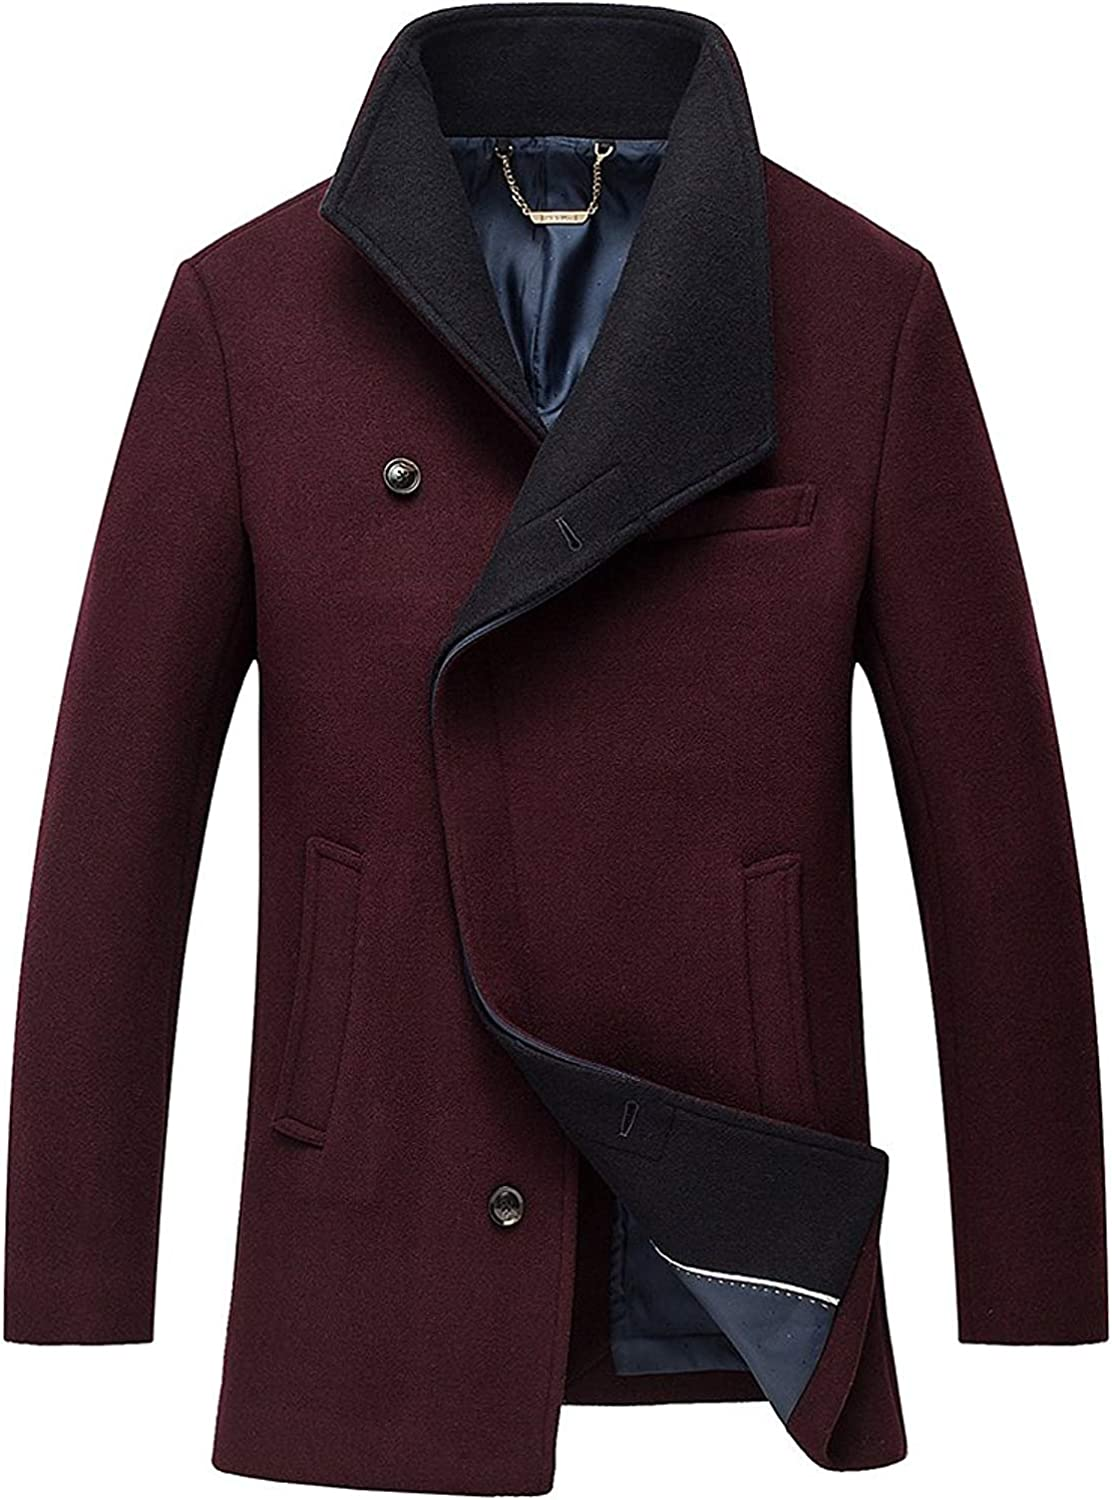 Xiami Leyuan Men's Perfect Shape Winter Jacket Coat with Australian Merino Wool Blend Single Breasted Trench